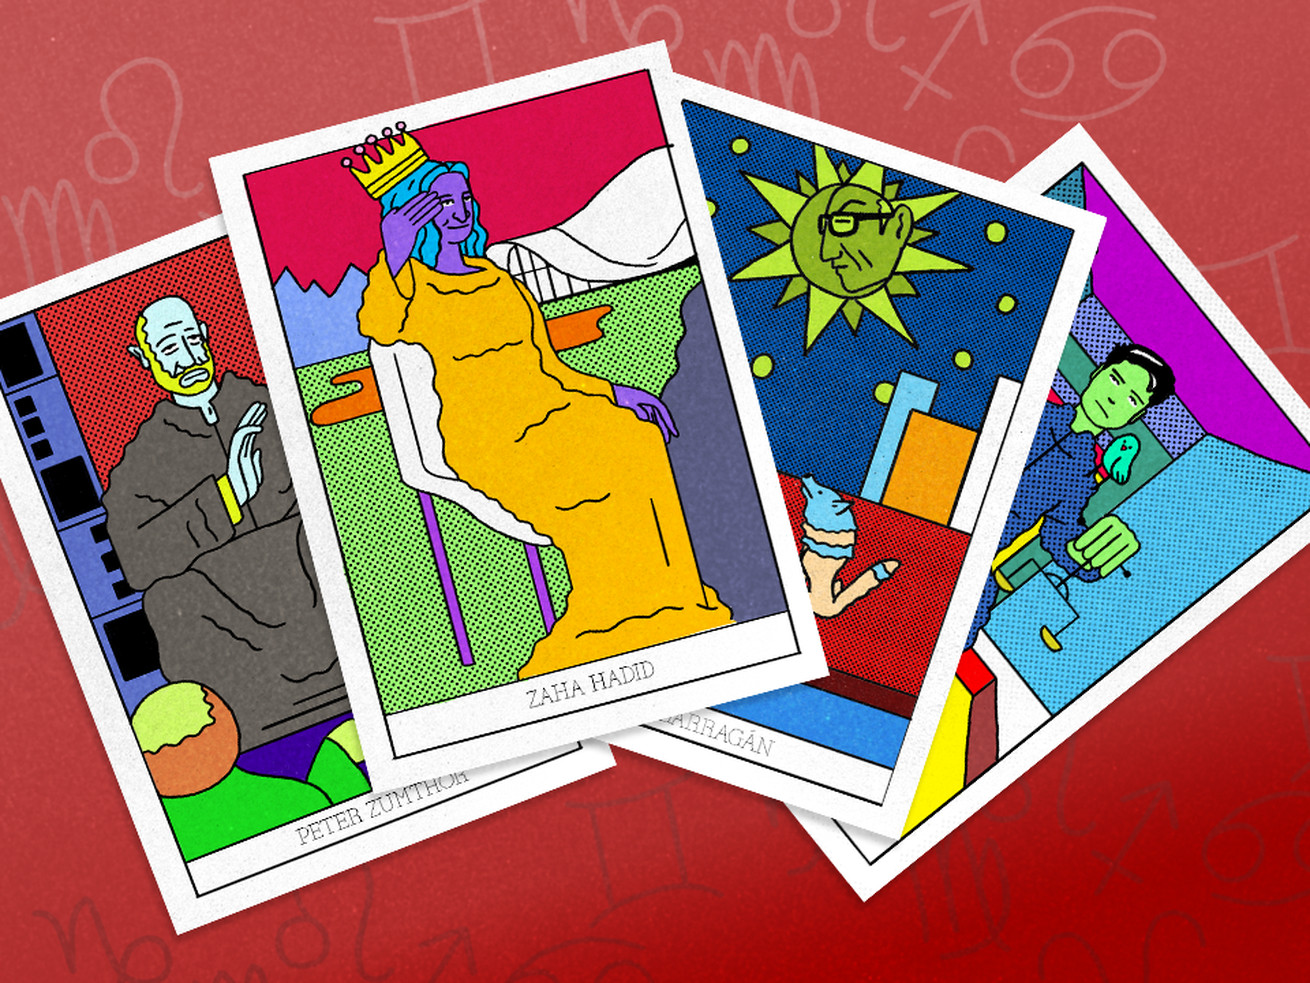 Brightly illustrated tarot cards feature people on them in purples, greens, yellows, and red.